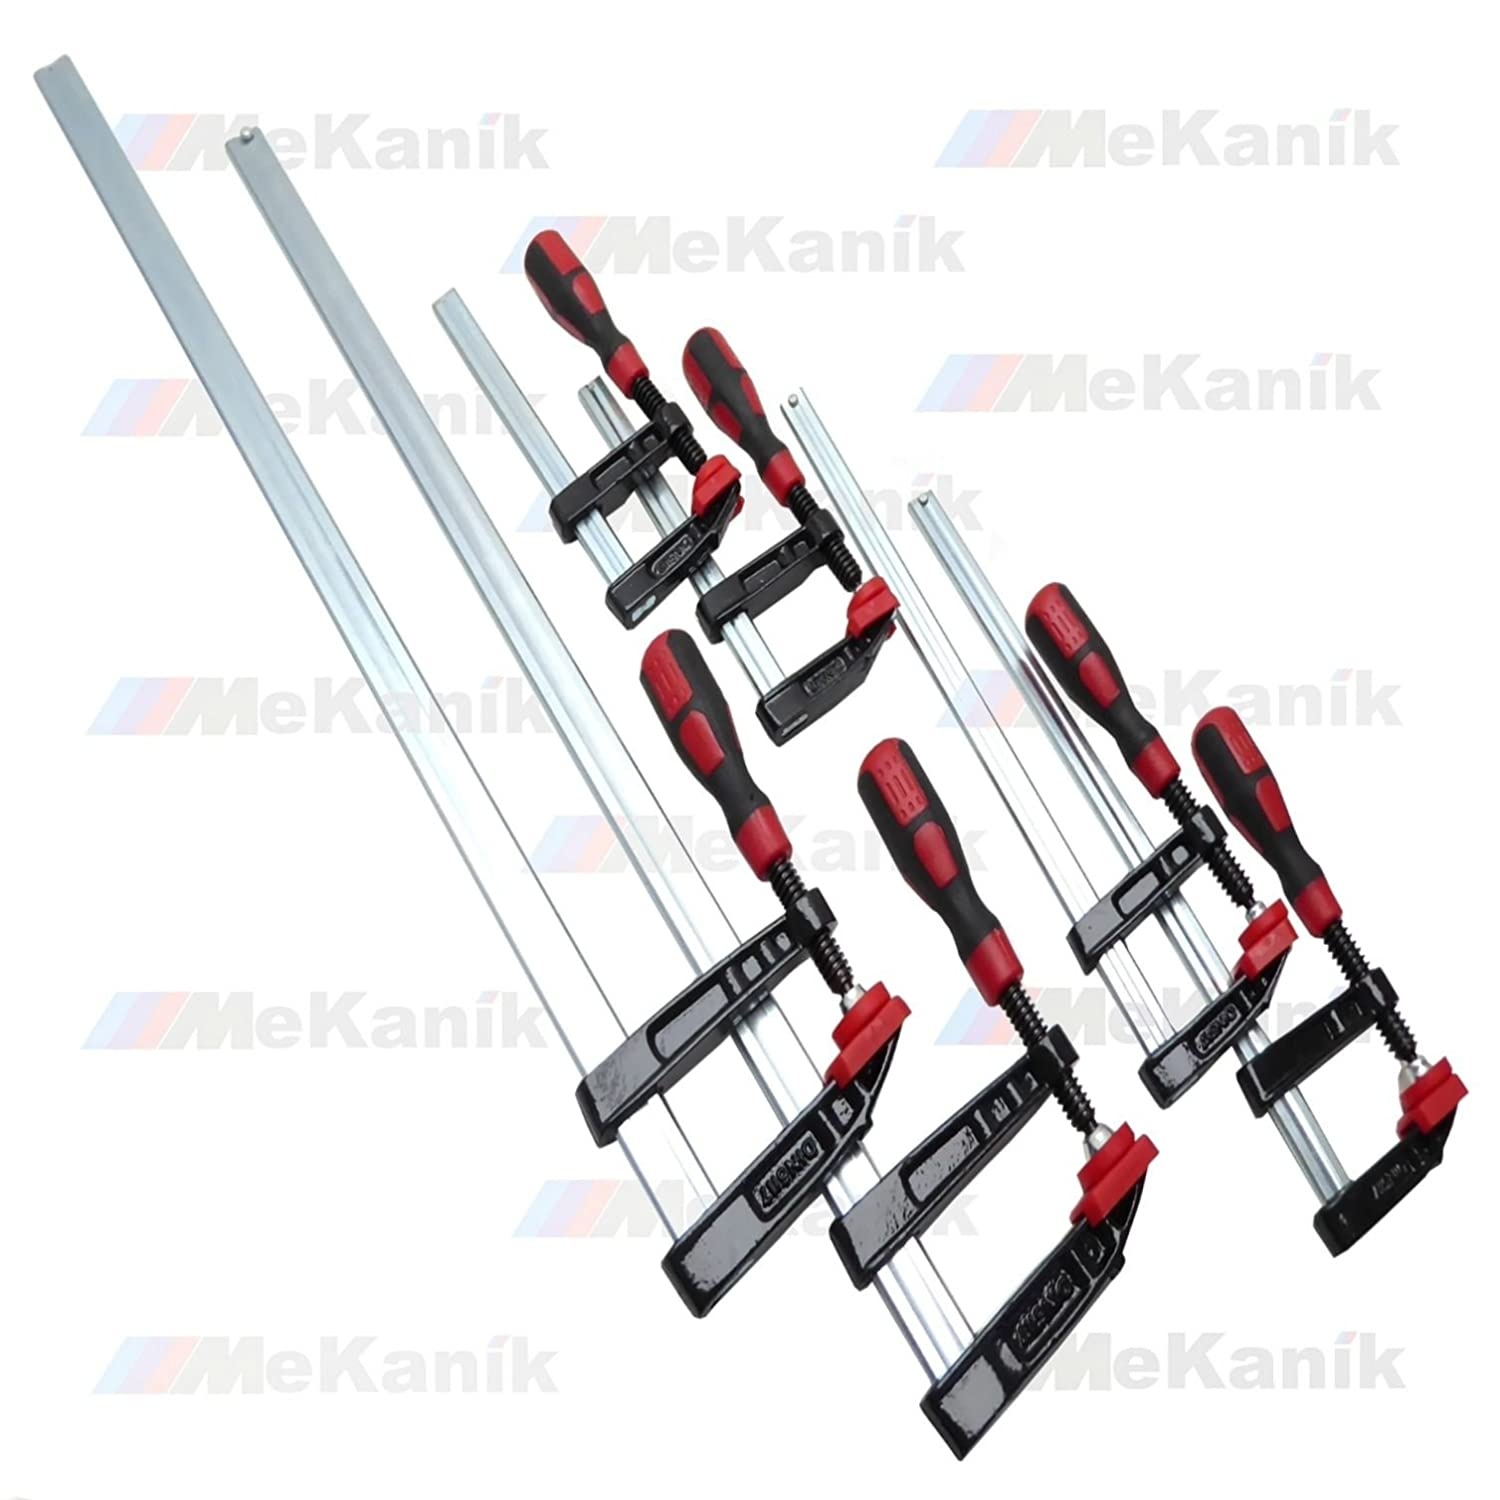 6pc F Clamp Bar Clamp 2x 6', 2x 12' & 2 x 24'Long Quick Slide Wood Clamp 2x 12 & 2 x 24Long Quick Slide Wood Clamp Mekanik